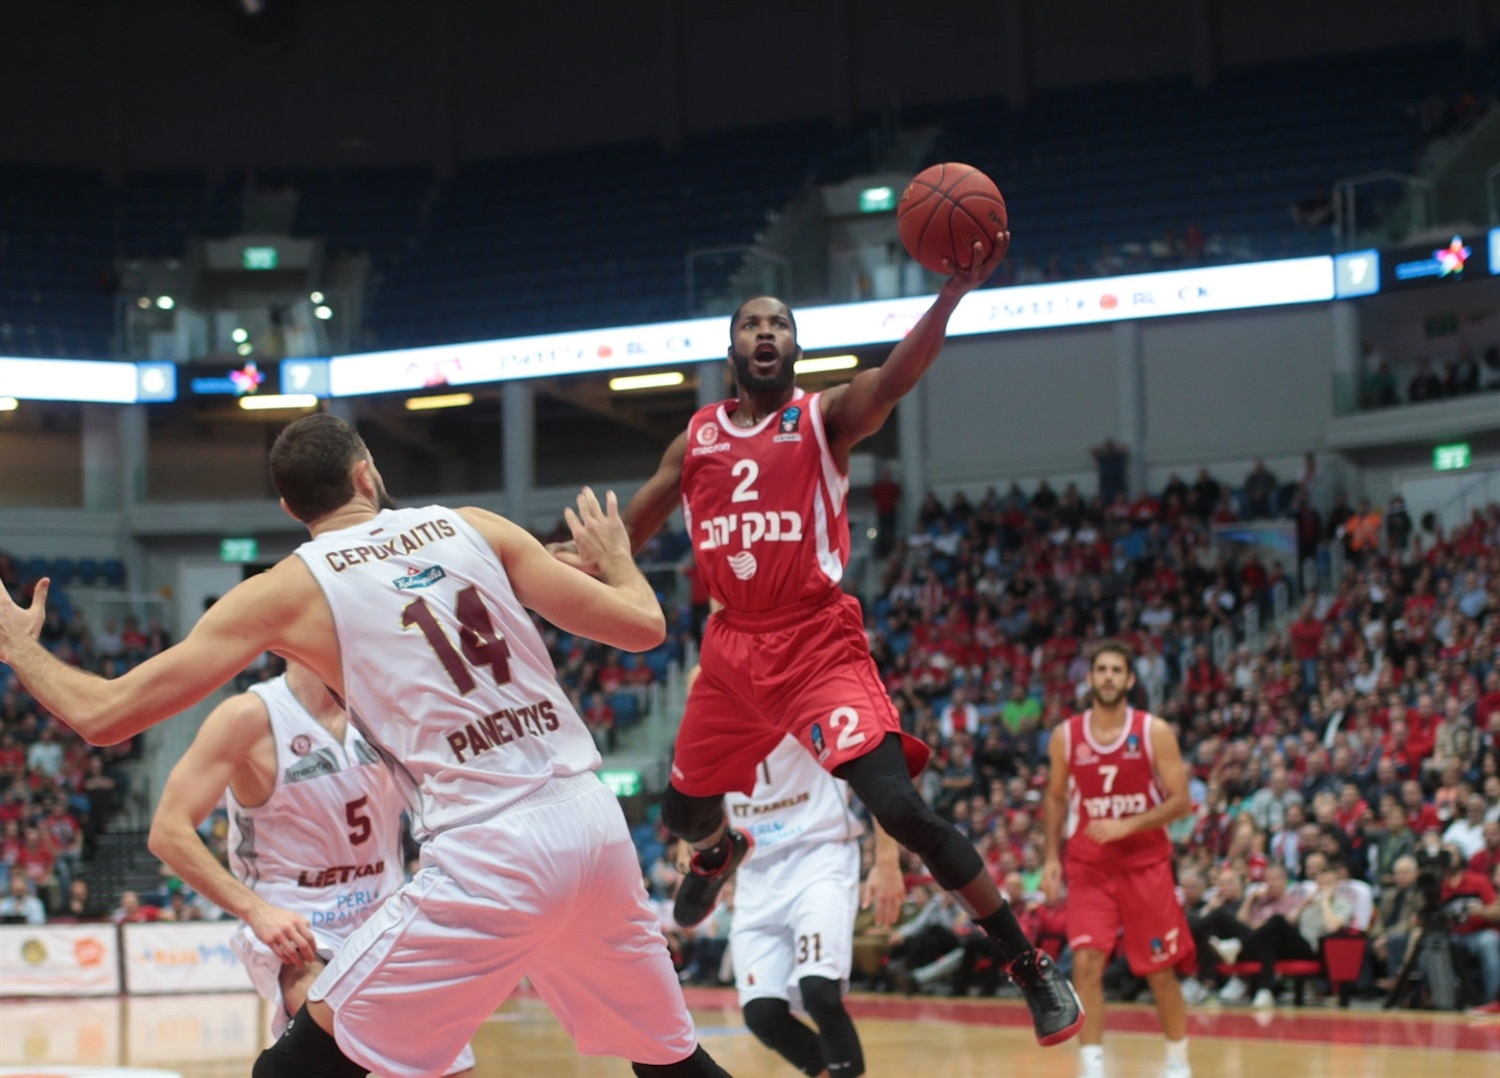 Jerome Dyson - Hapoel Bank Yahav Jerusalem (photo Jerusalem) - EC17_8c66mf3f5eo4vmin